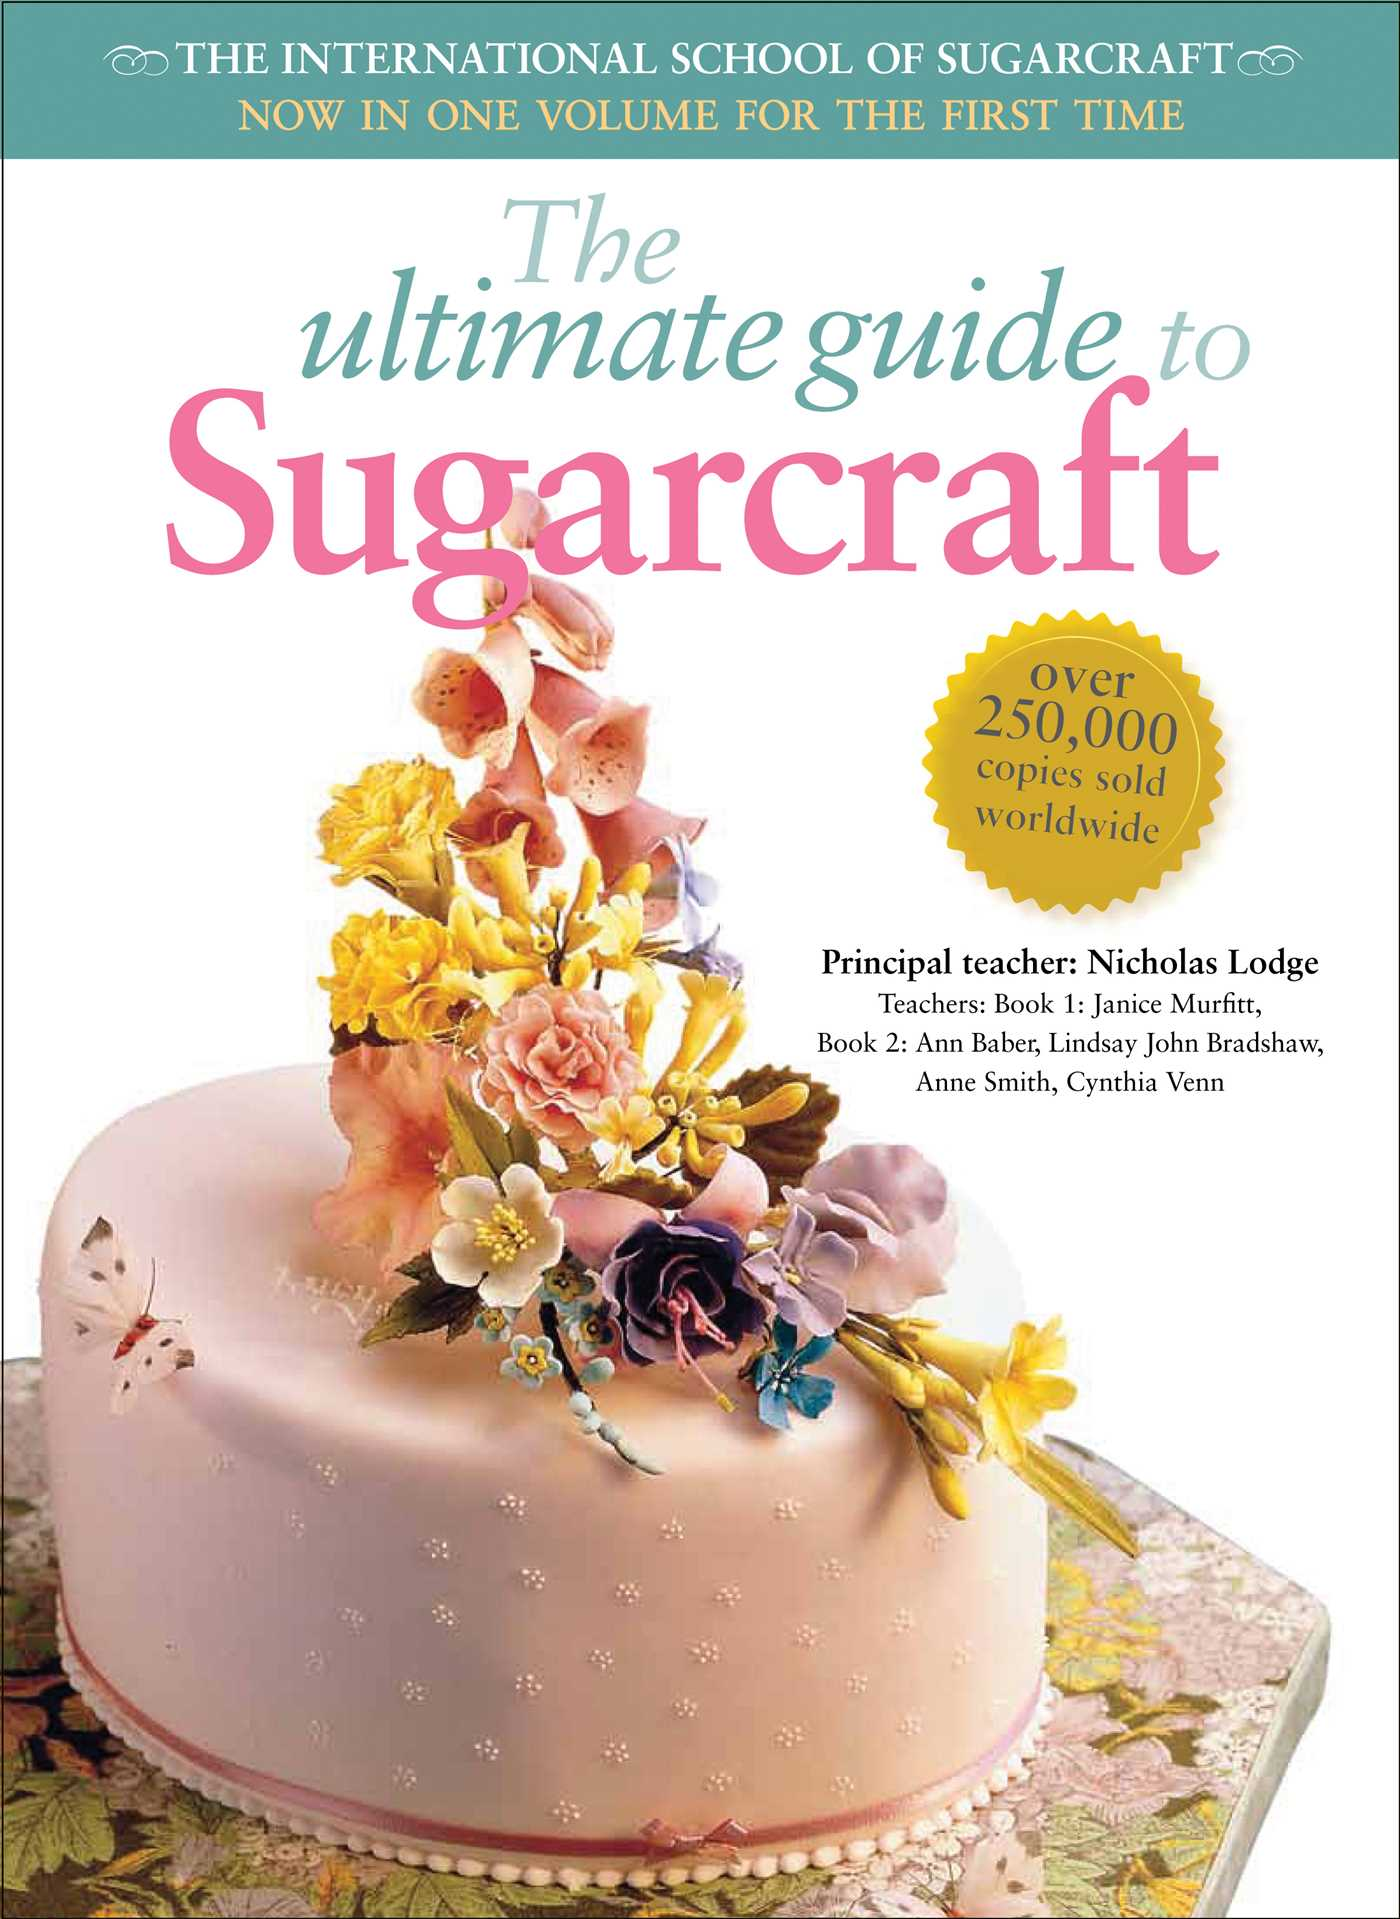 The ultimate guide to sugarcraft 9780804849050 hr